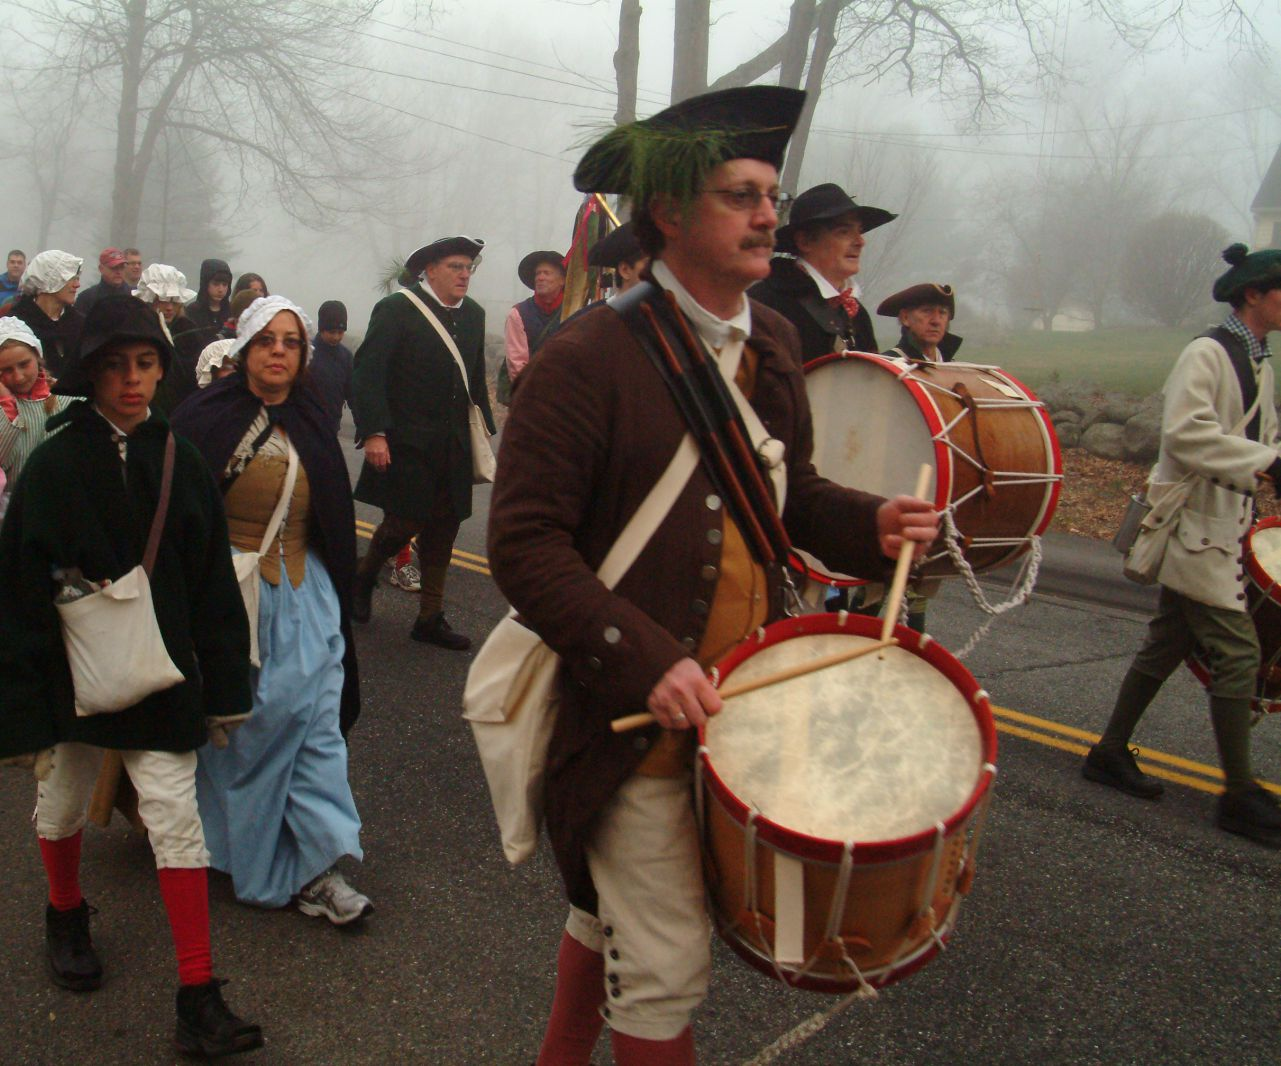 Picture of colonial re-enactors marching